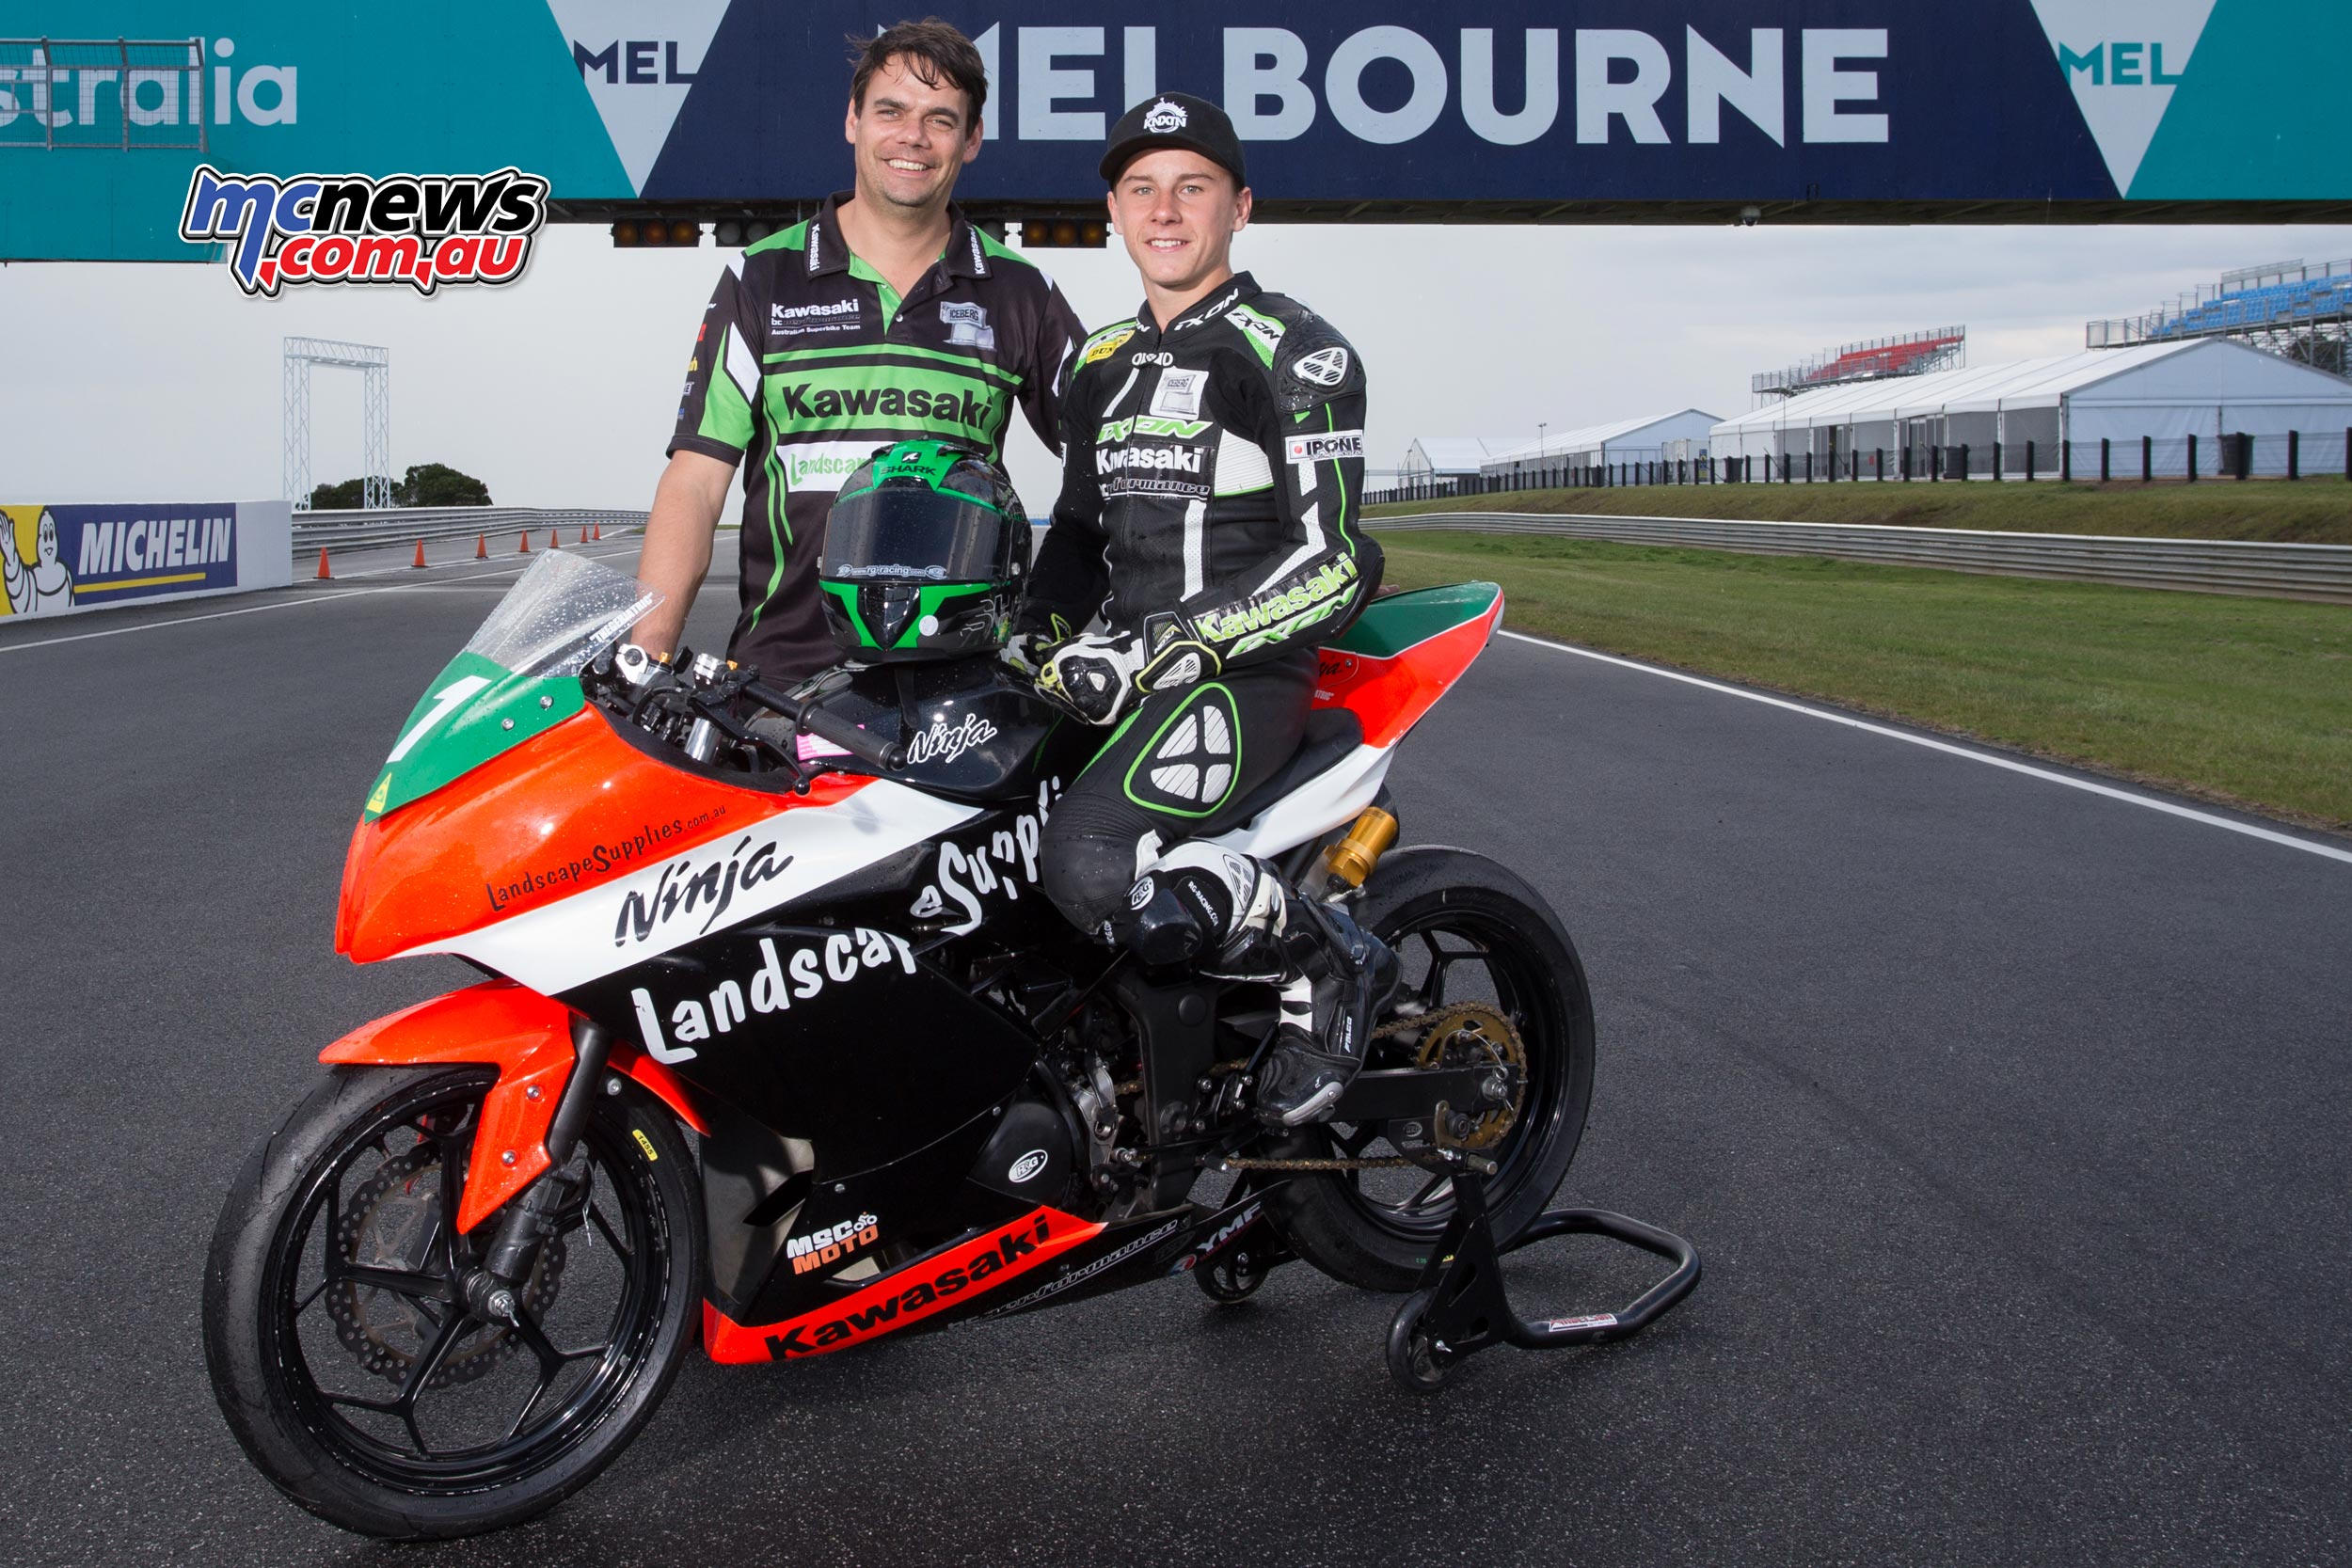 BCperformance tastest championship success in 2017 with Reid Battye in the Supersport 300 category - Image by TBG